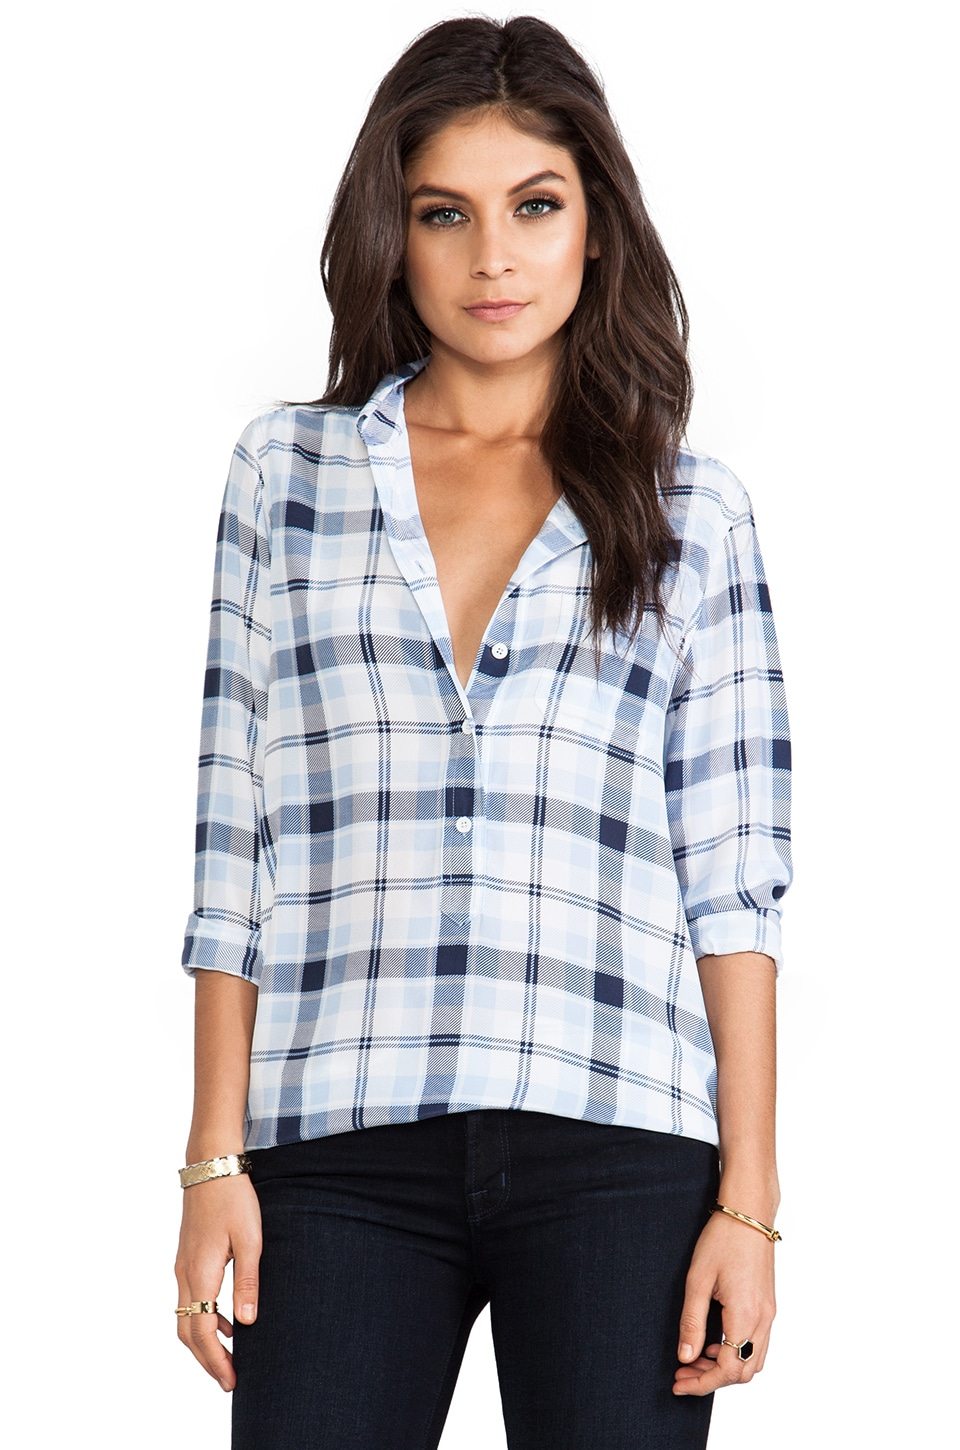 Equipment Capri Country Plaid Blouse in Peacoat